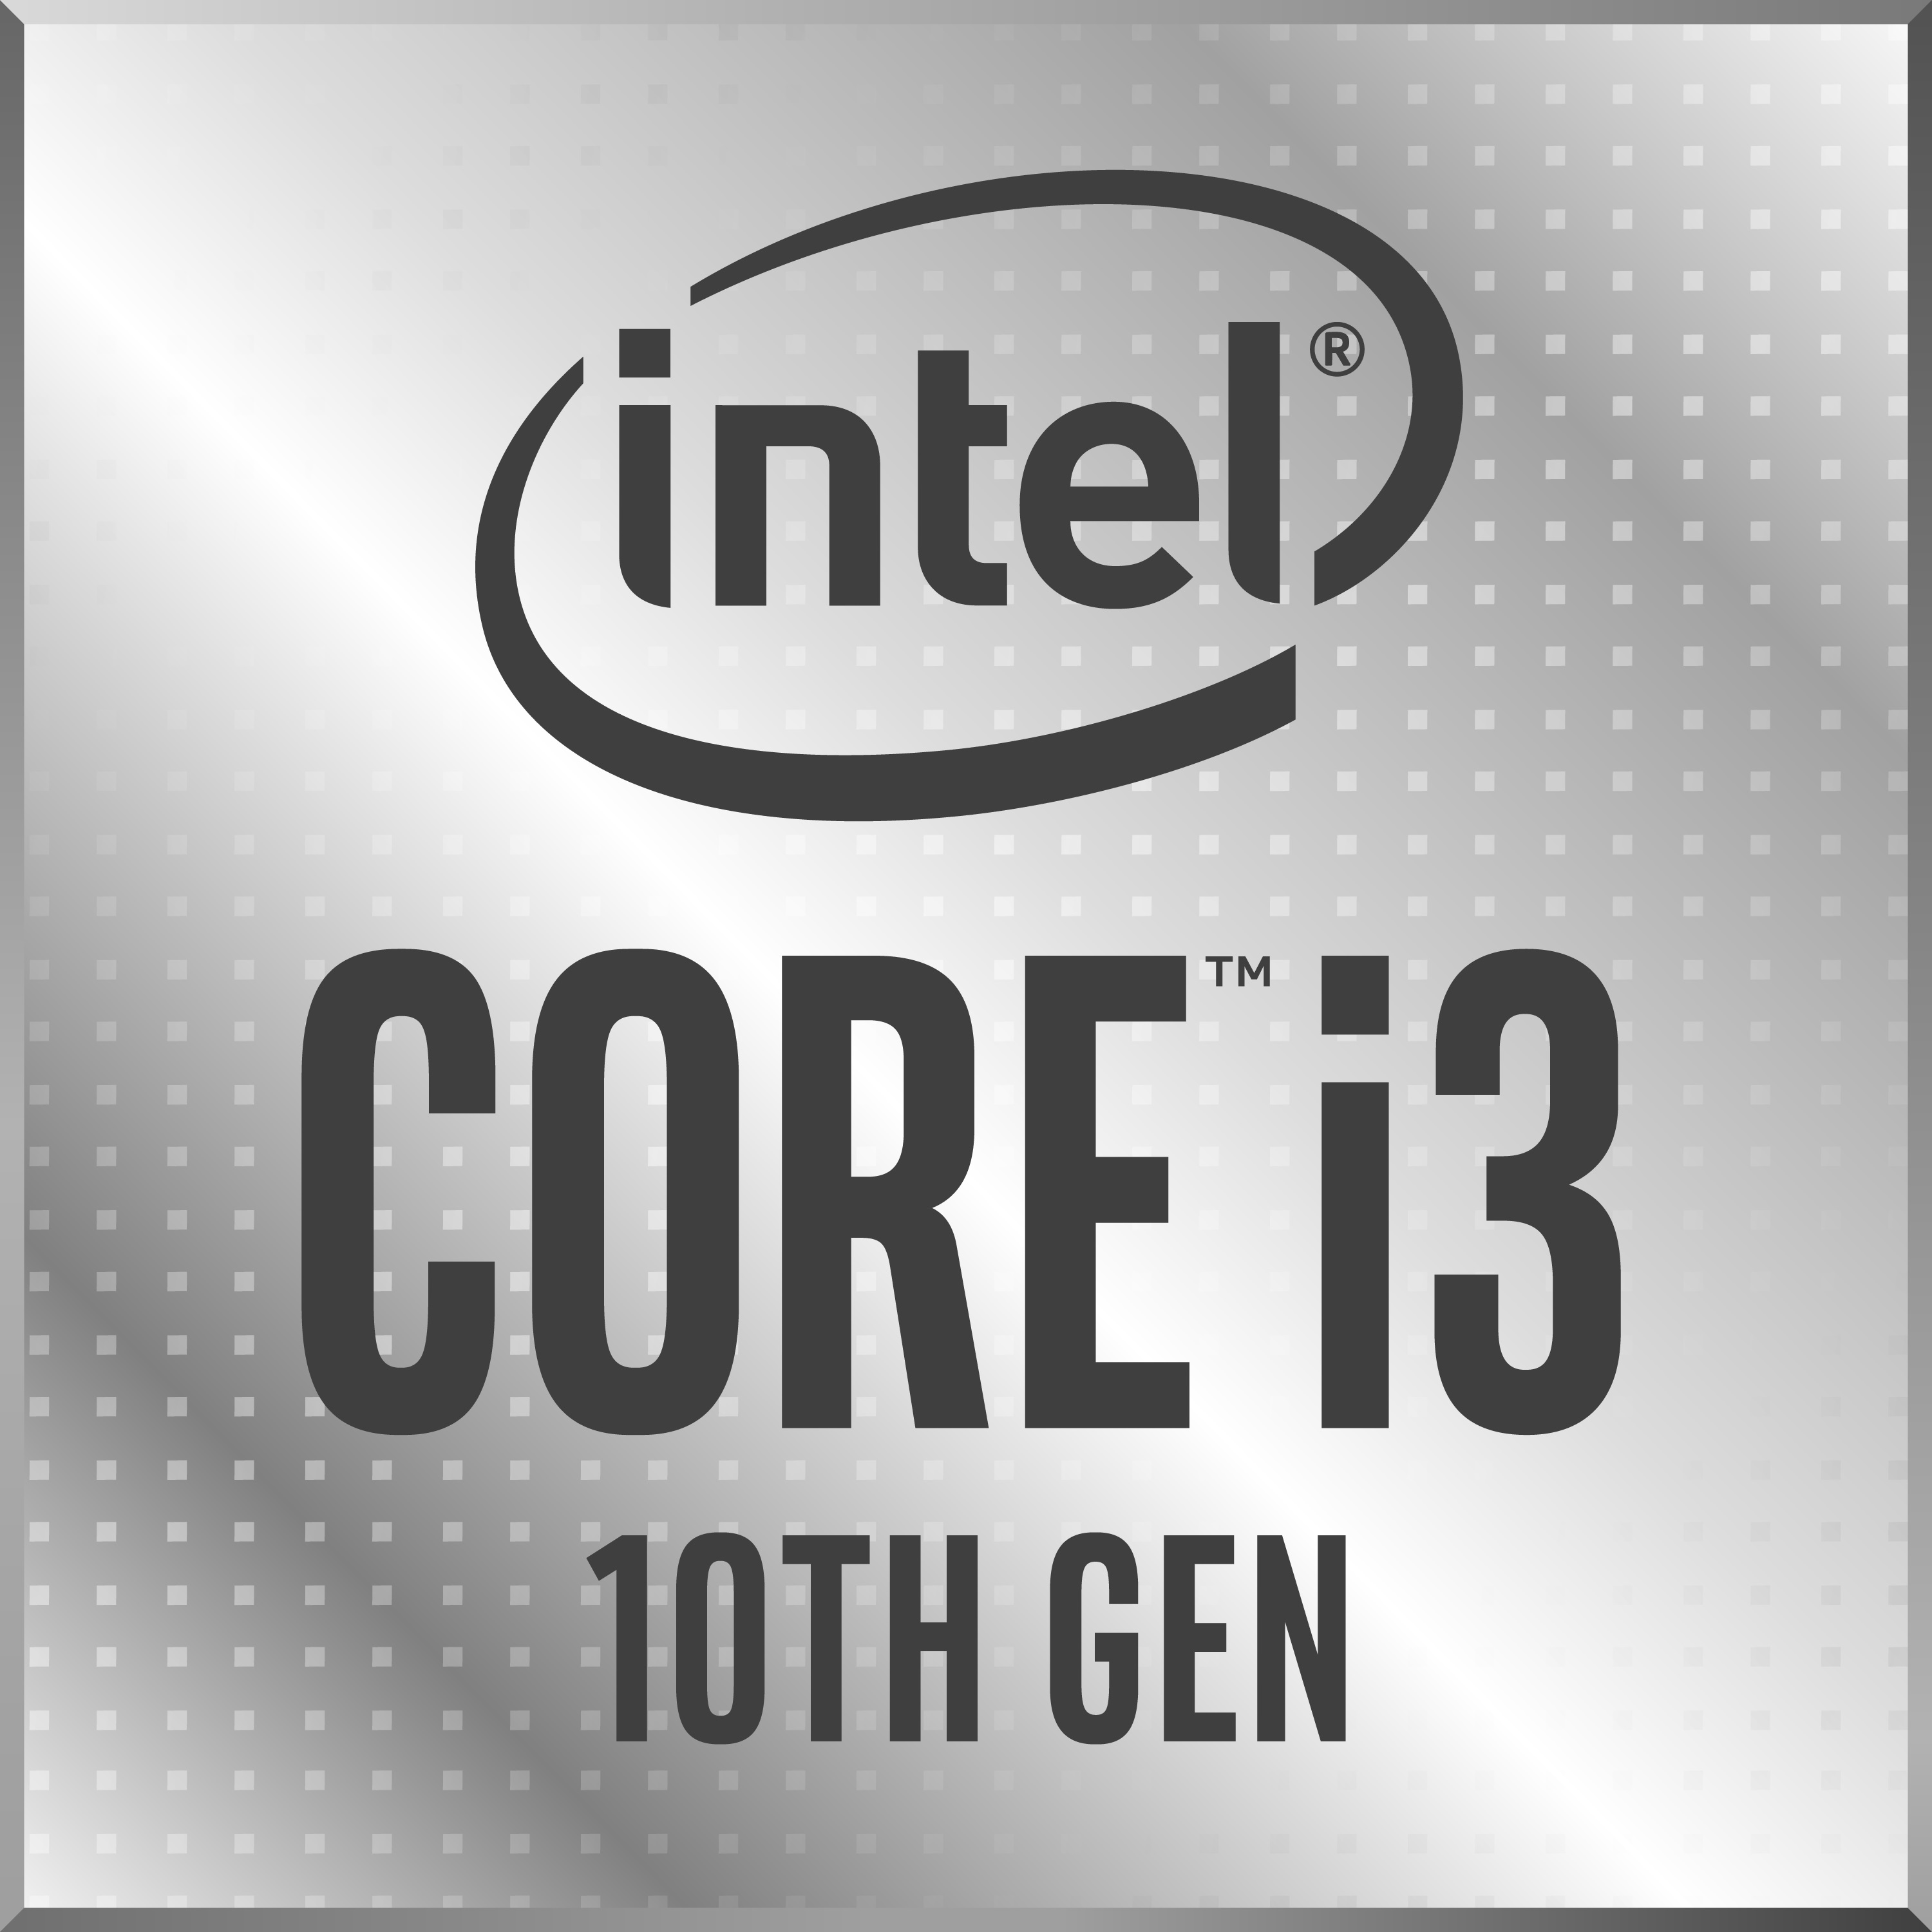 Intel-10th-Gen-Core-i3-badge